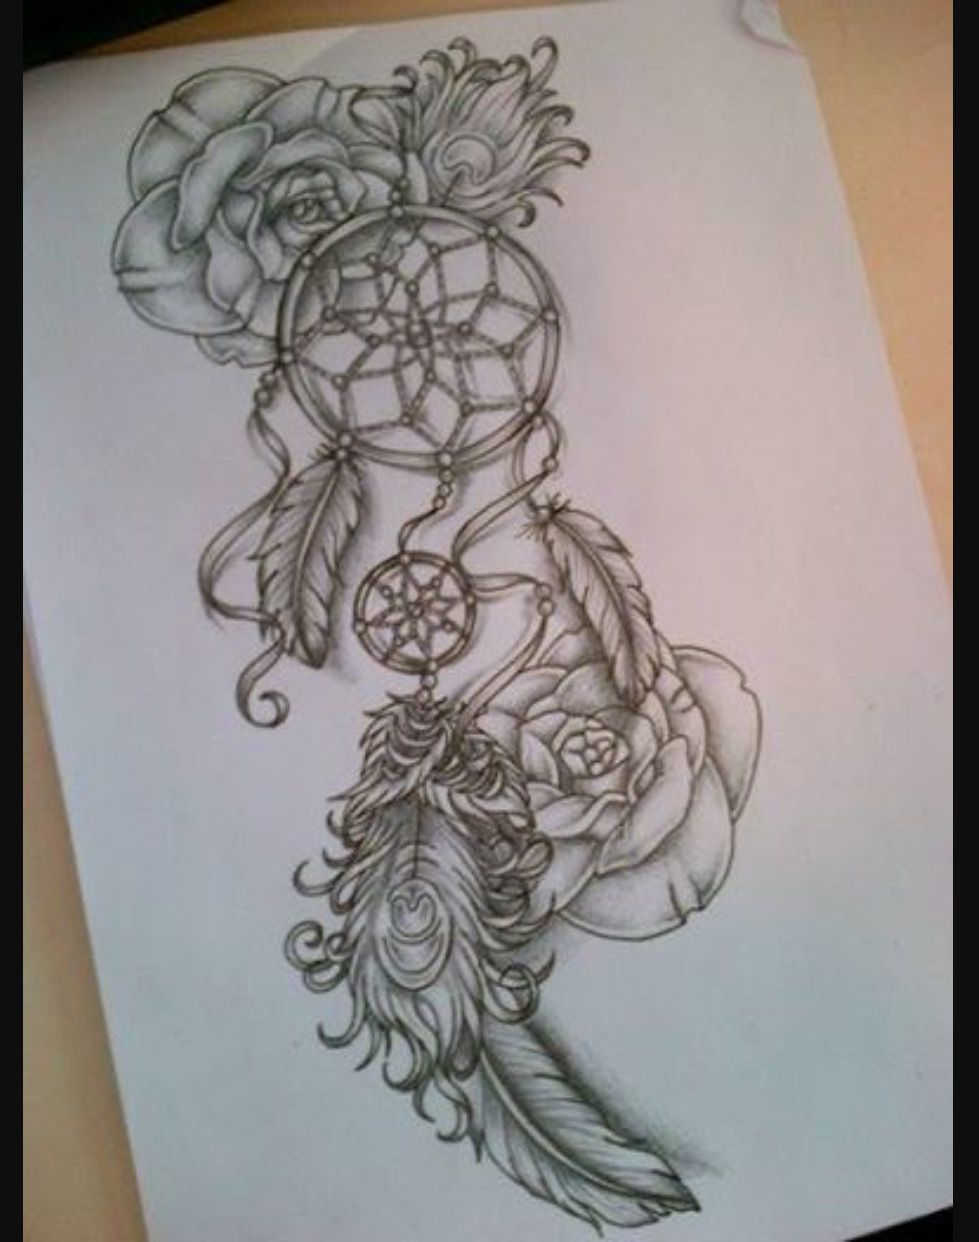 Girl knuckle tattoo ideas pin by tiffany augustine on tattoos  pinterest